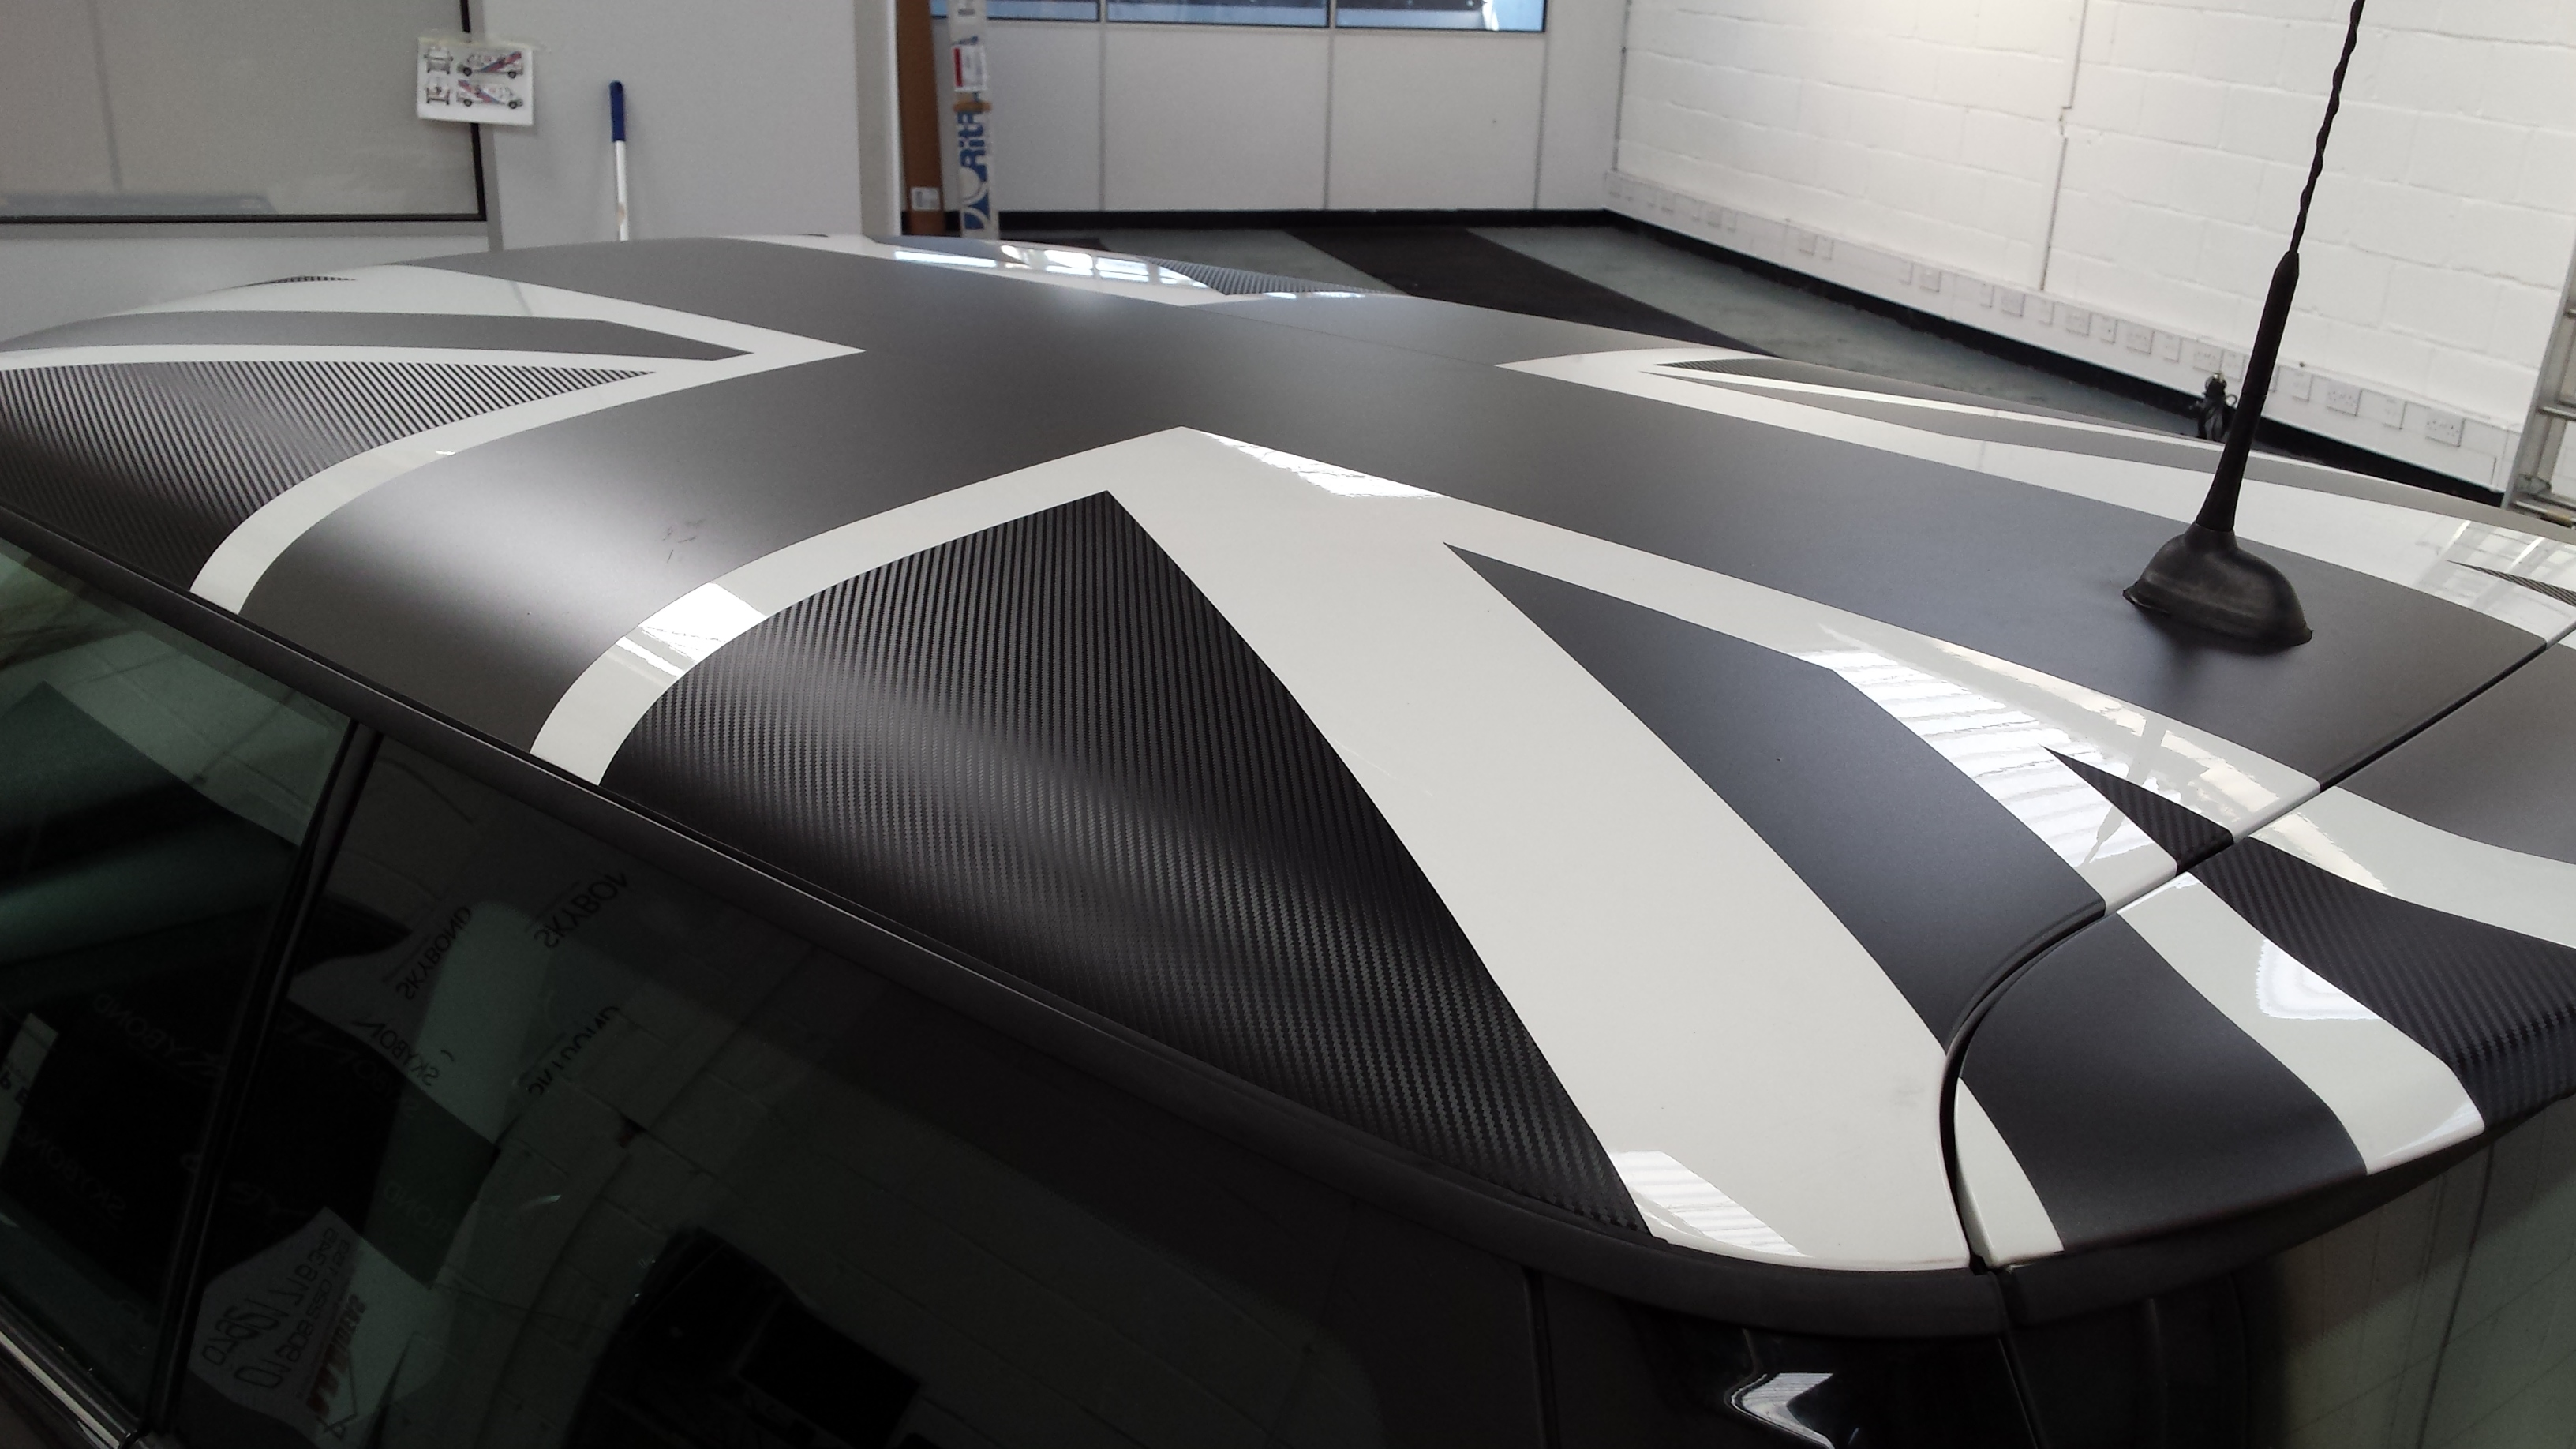 Mini Carbon Fibre and Graphite Roof Wrap